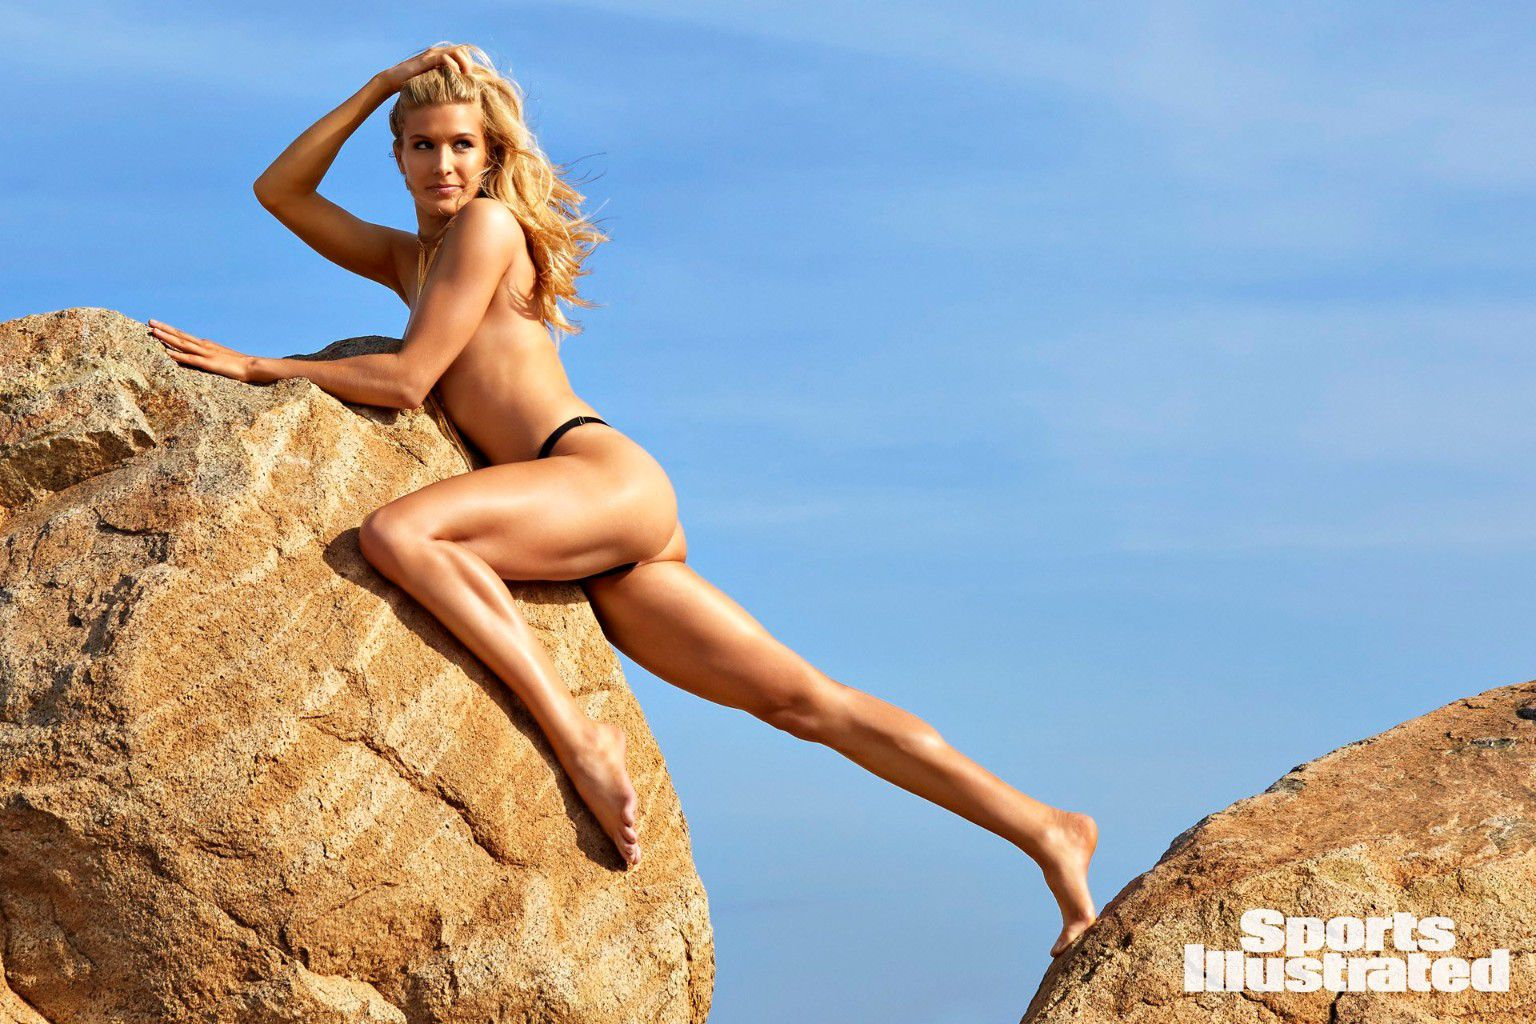 eugenie-bouchard-super-sexy-in-sports-illustrated-swimsuit-issue-2018-22